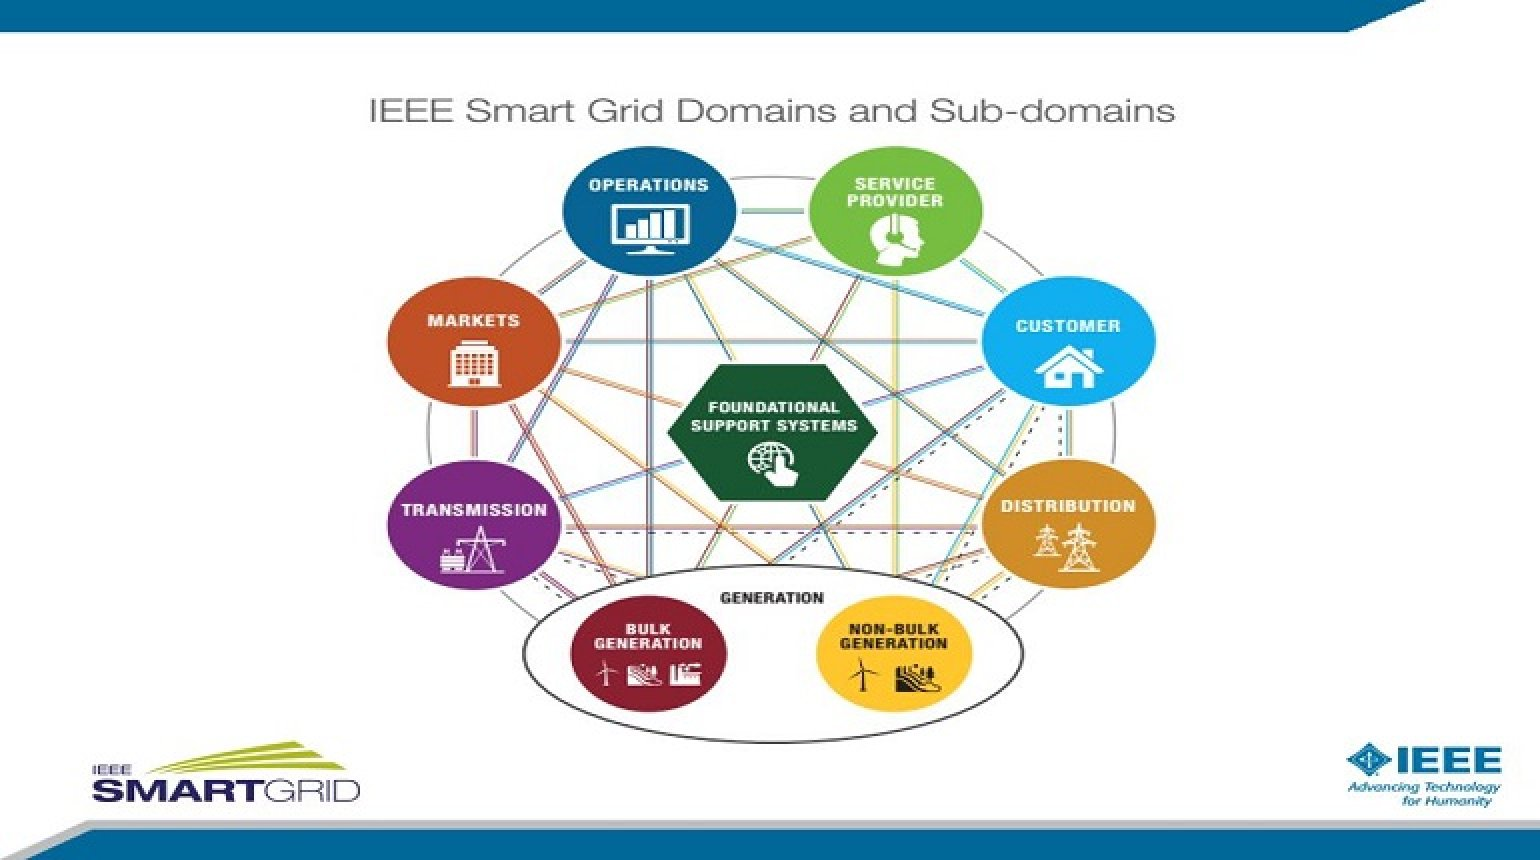 IEEE Standards Enable a Reliable, Secure, Interoperable Smart Grid presented by Steve Collier